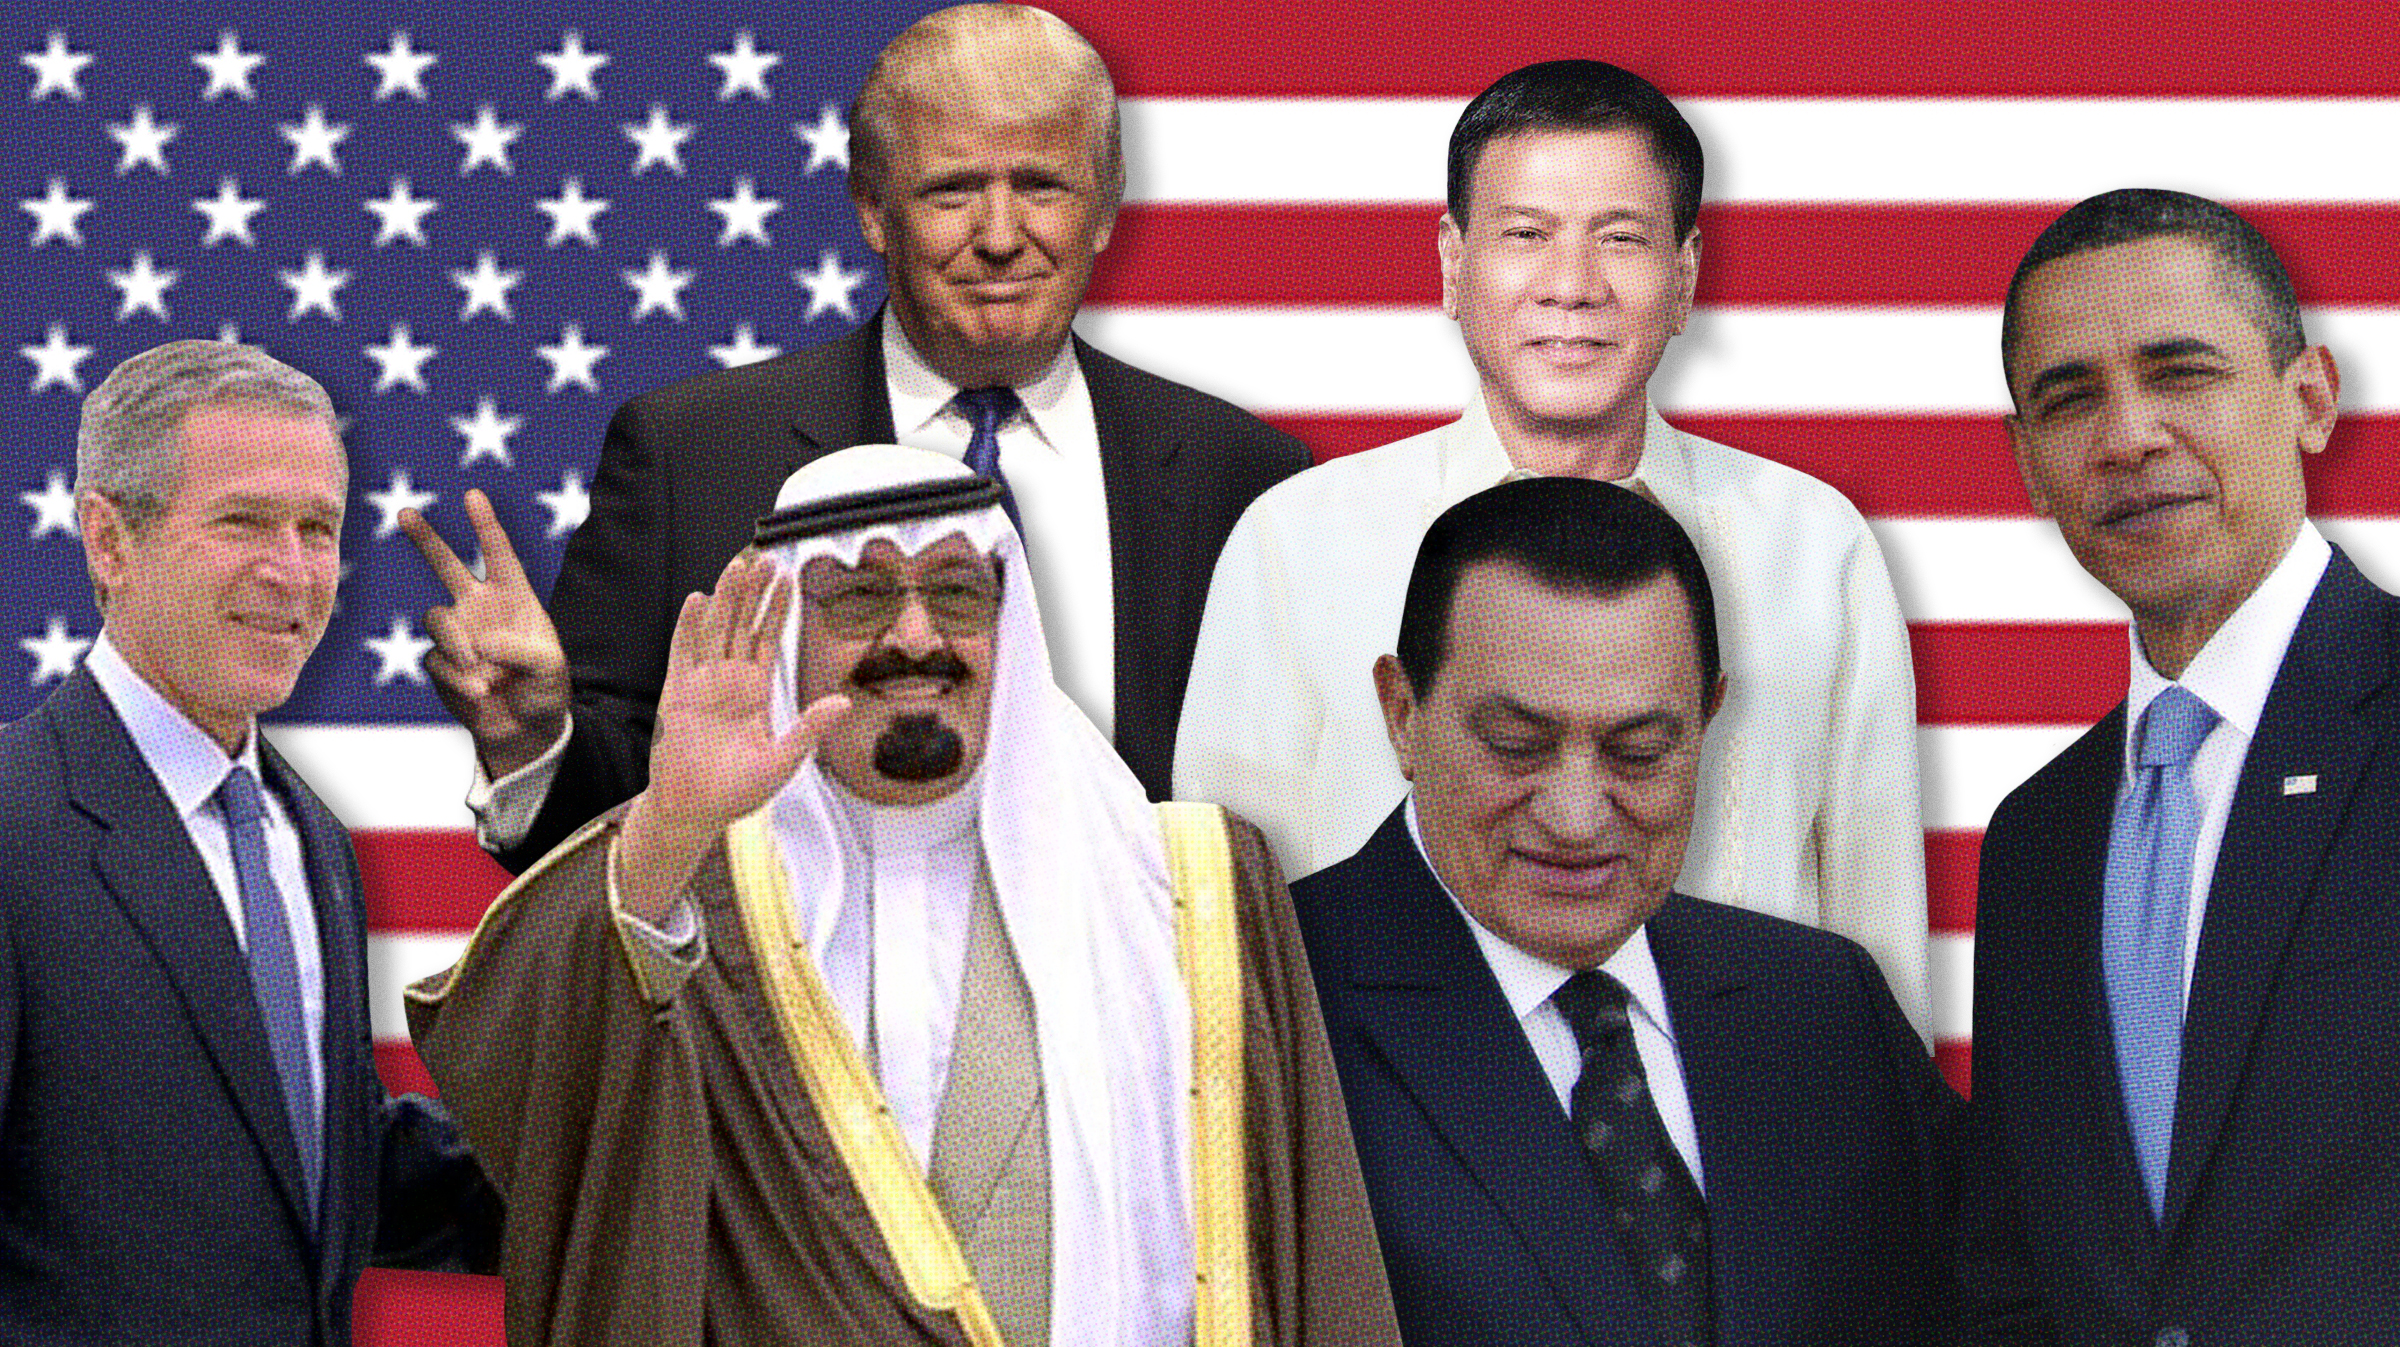 president and us foreign policy The united states adopted a non-interventionist foreign policy from 1932 to 1938, but then president franklin d roosevelt moved toward strong support of the allies in their wars against germany and japan.